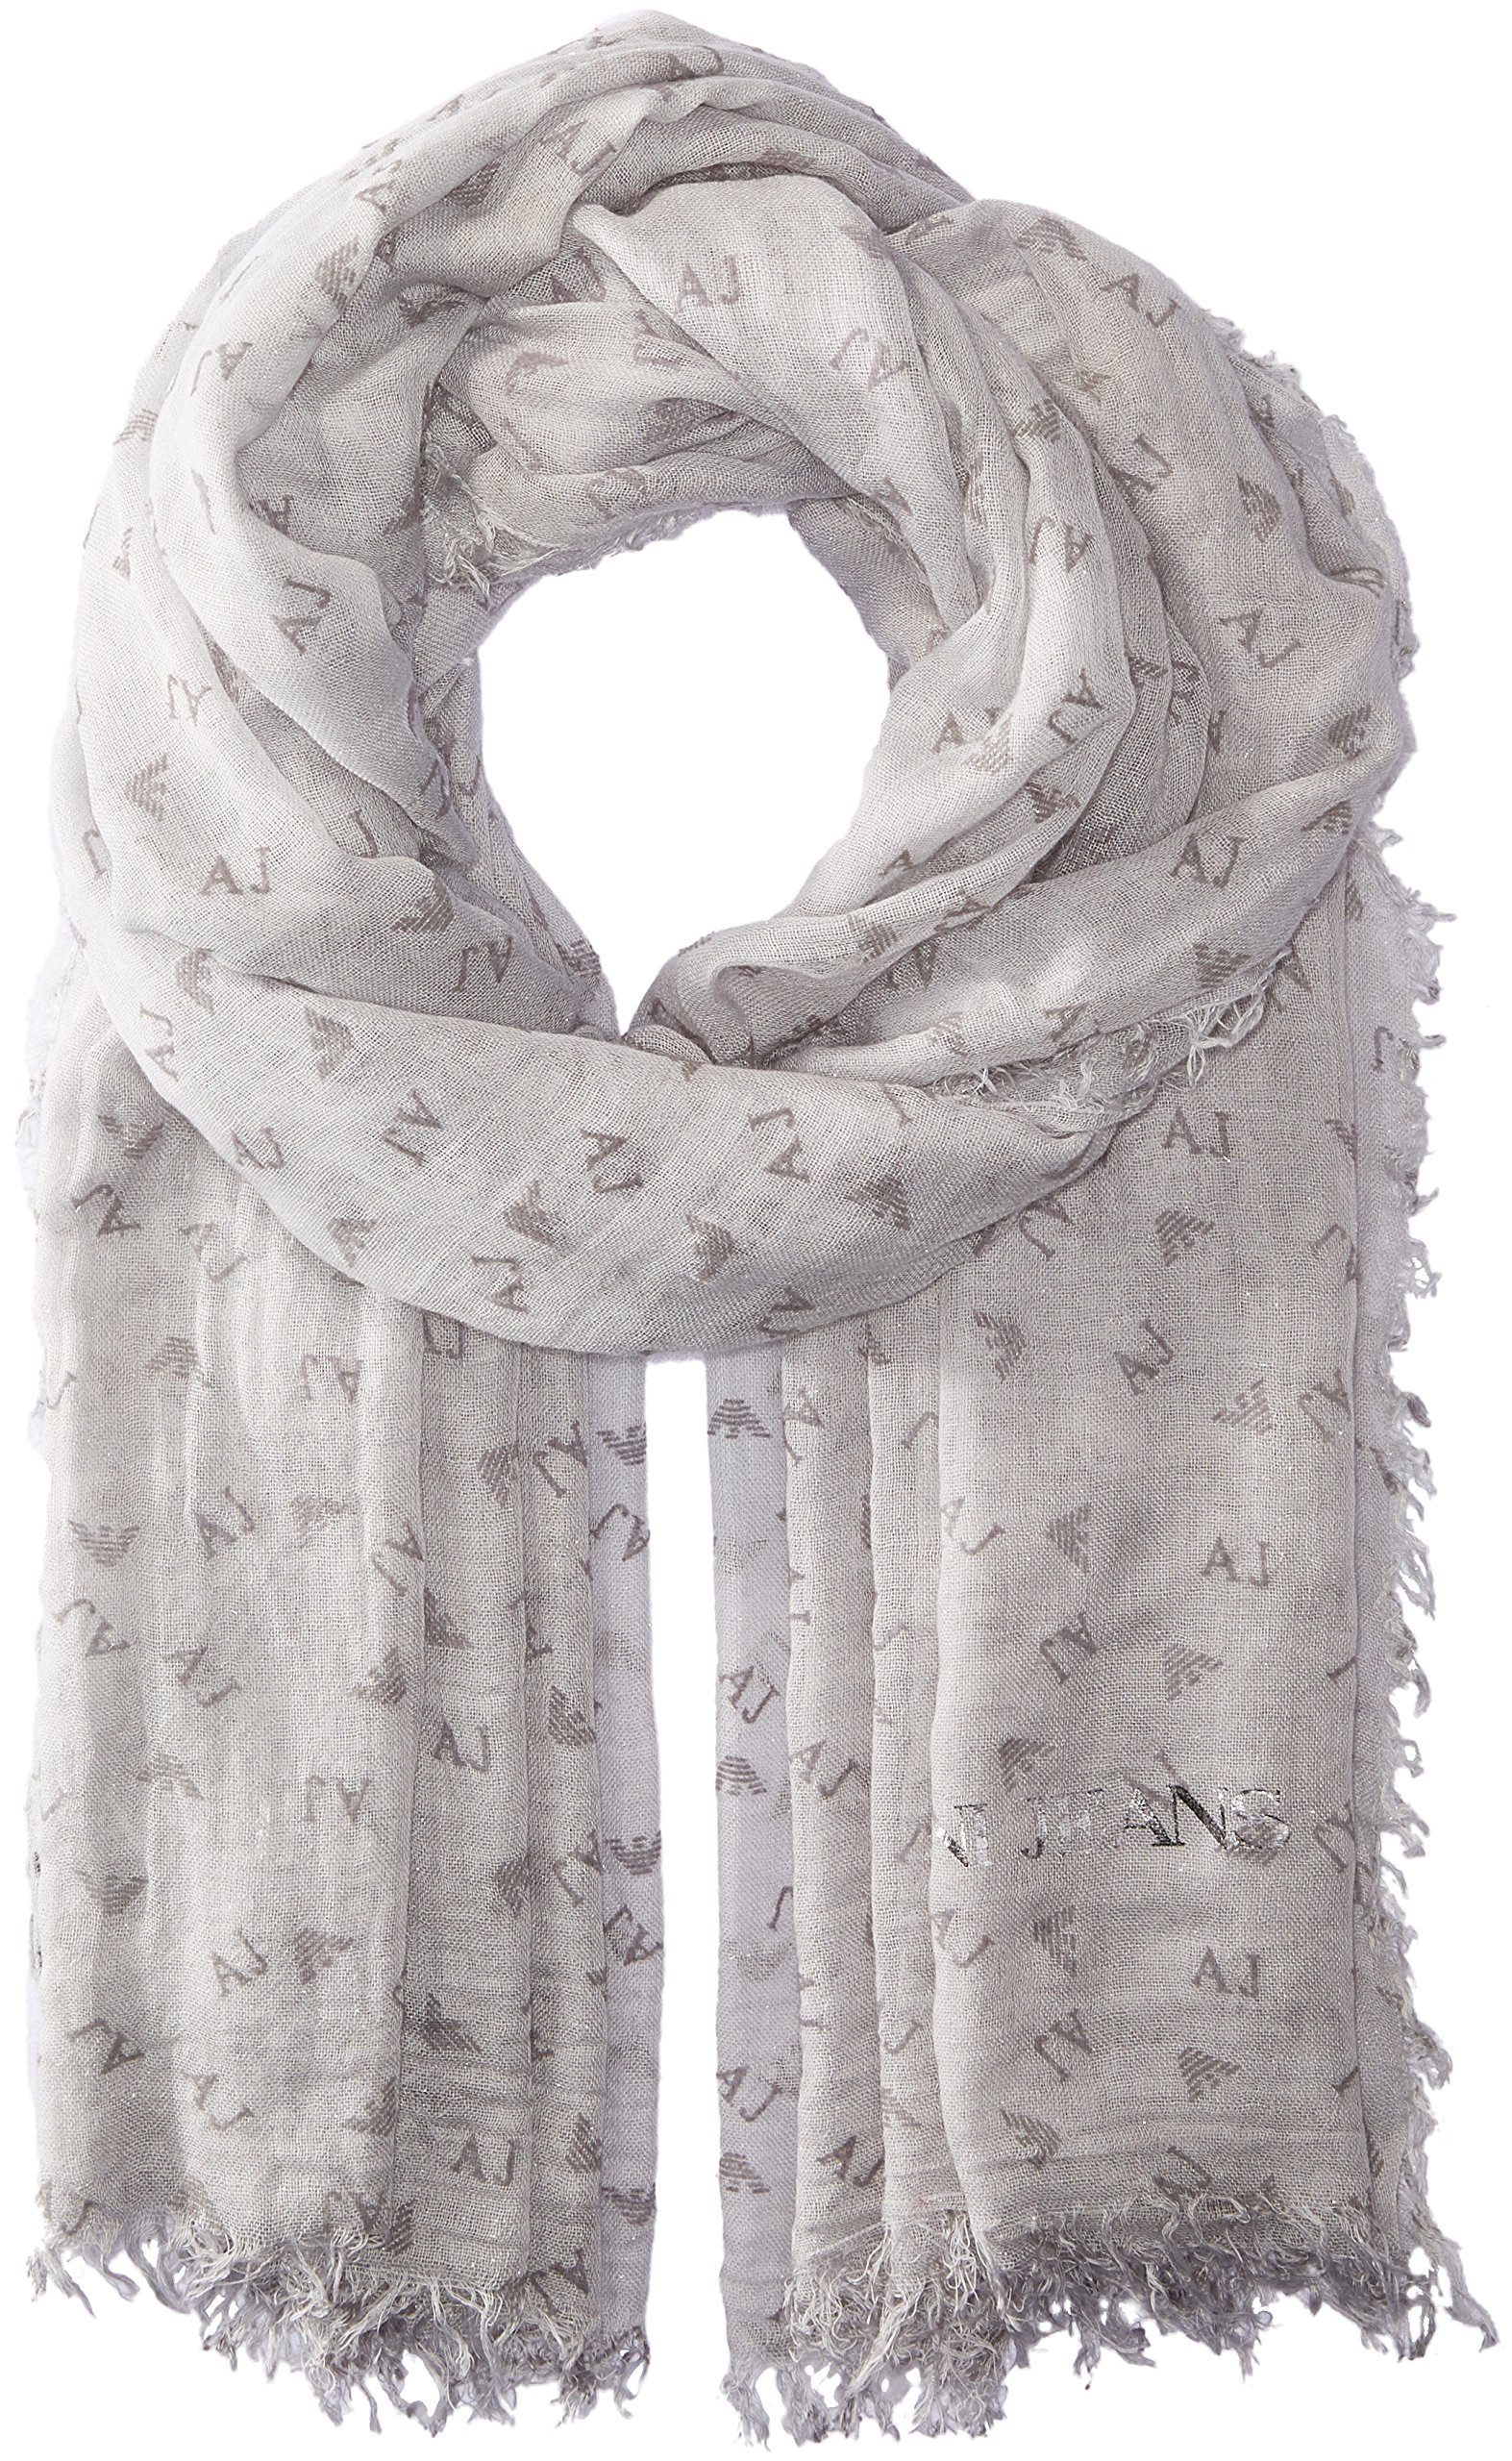 Armani Jeans Women's Rose Print Woven Scarf, medium grey, One Size